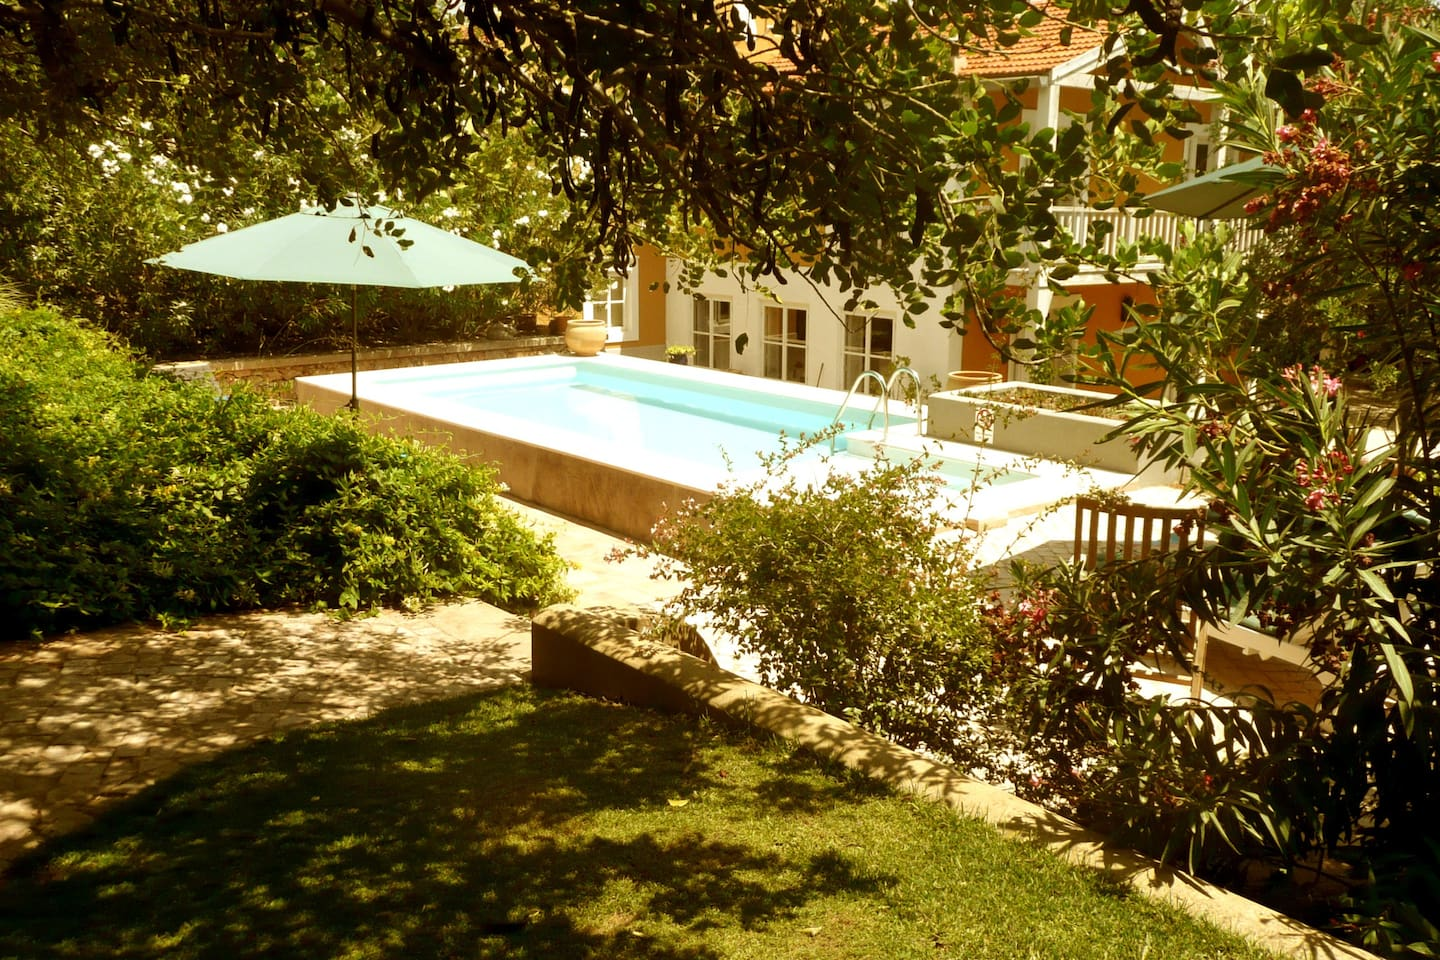 View from Garden to the Pool